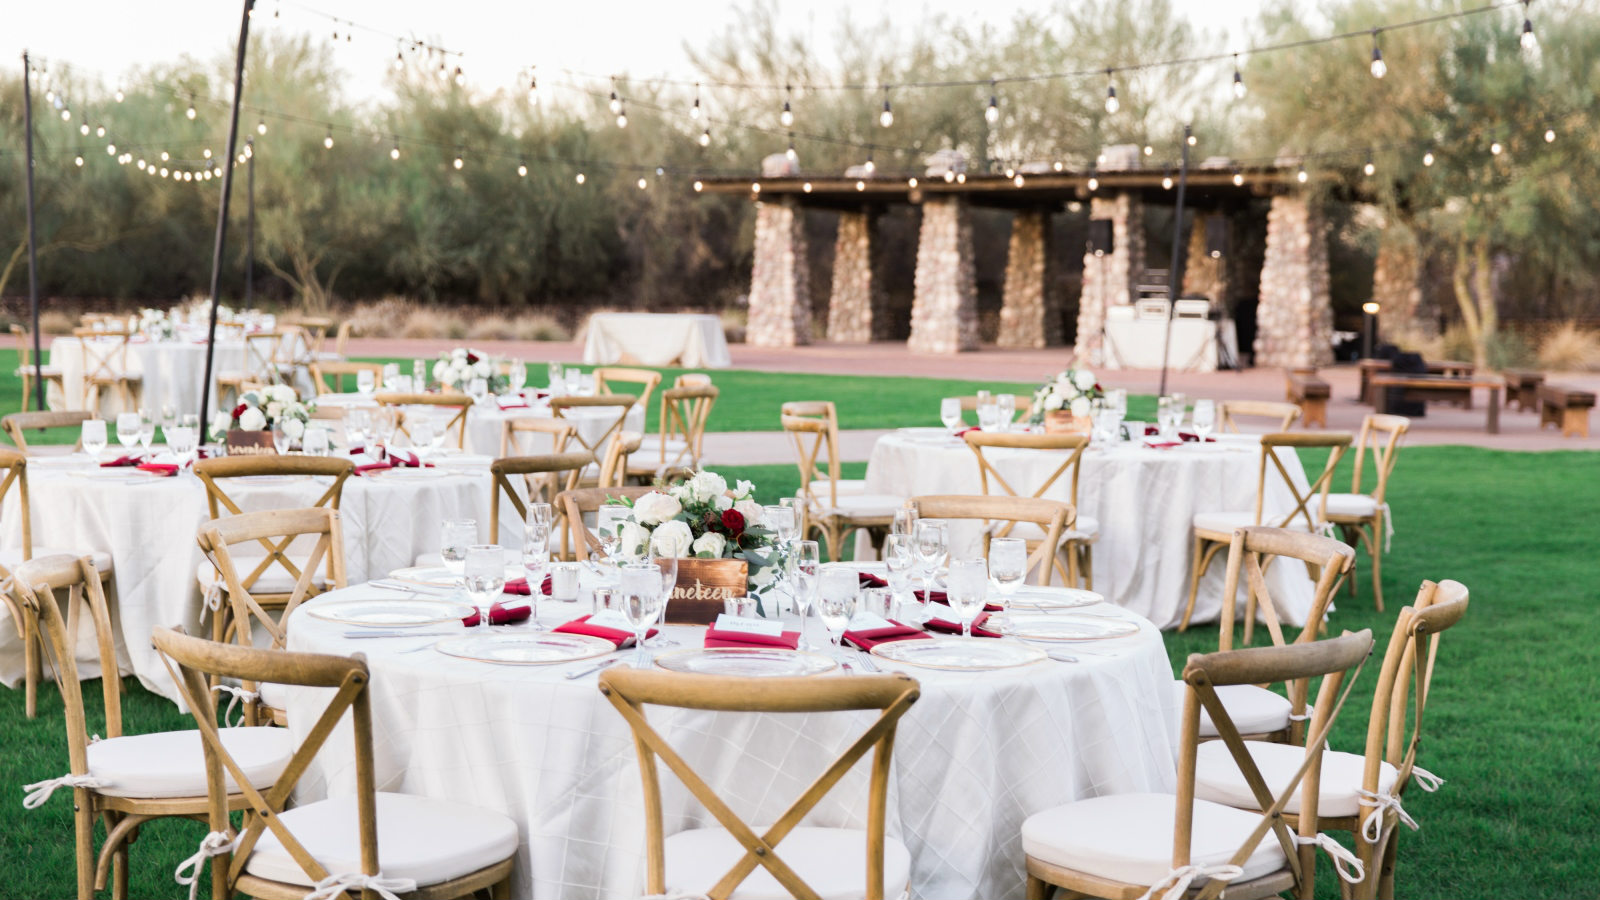 Phoenix Resort Wedding Venue - Outdoor Wedding